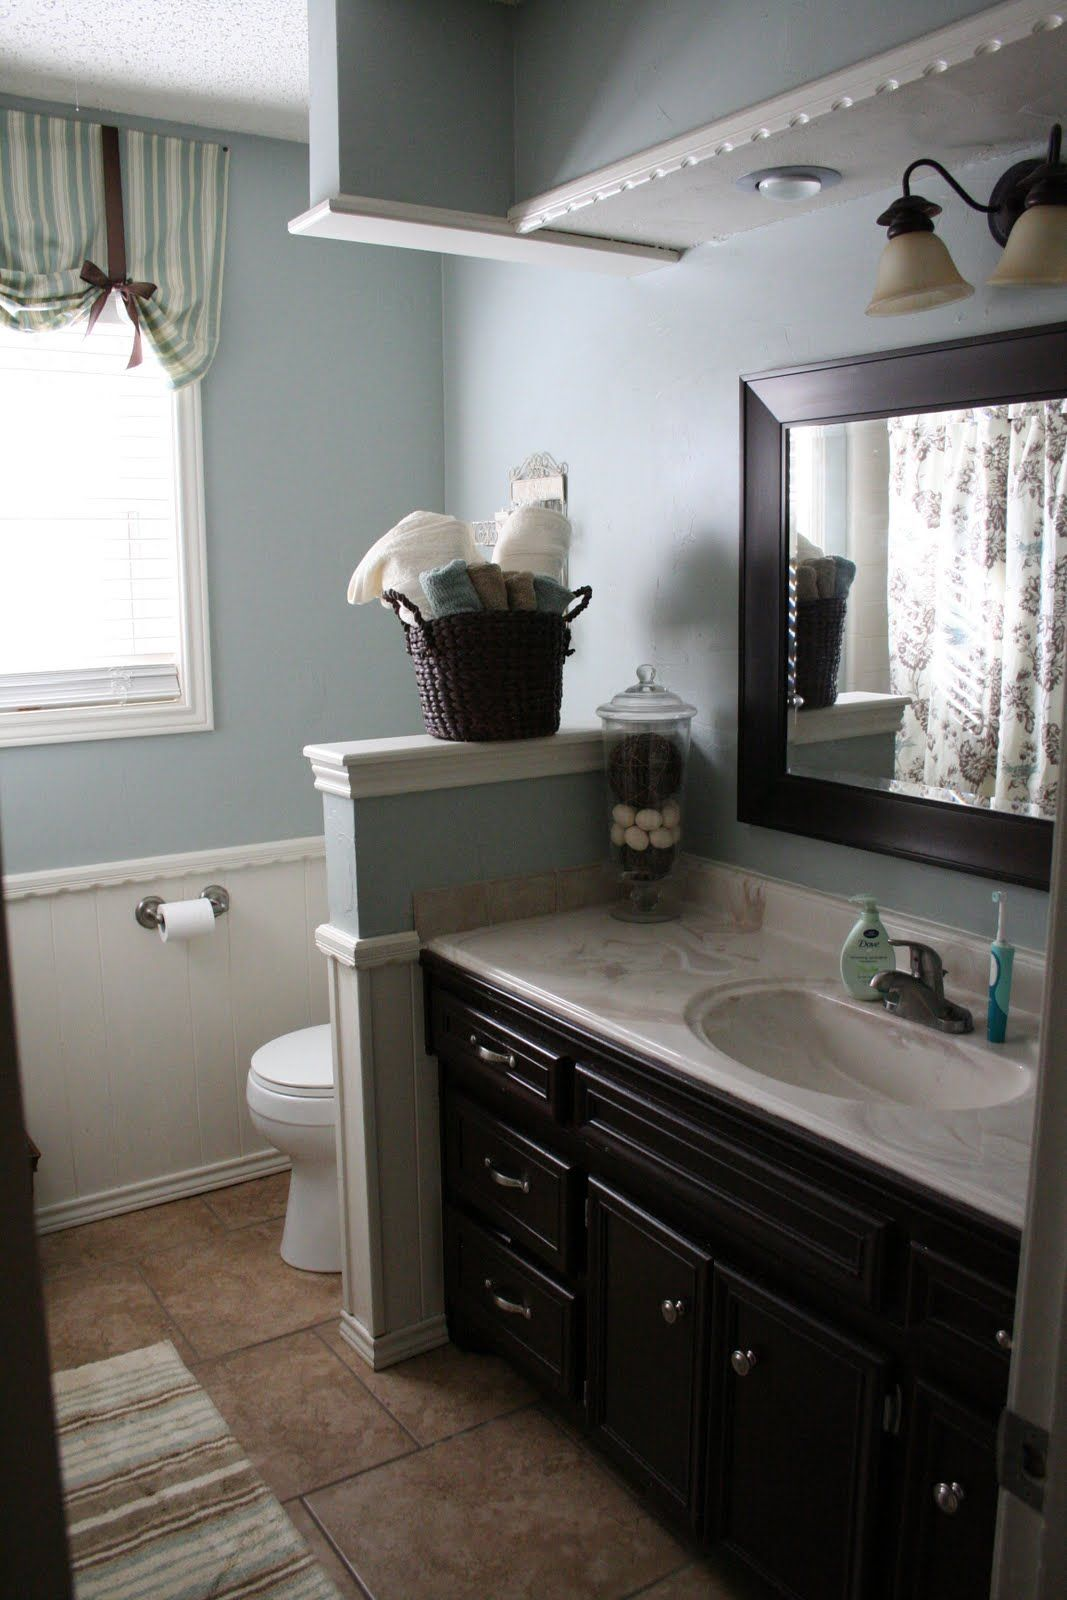 Bathroom with dark accessories